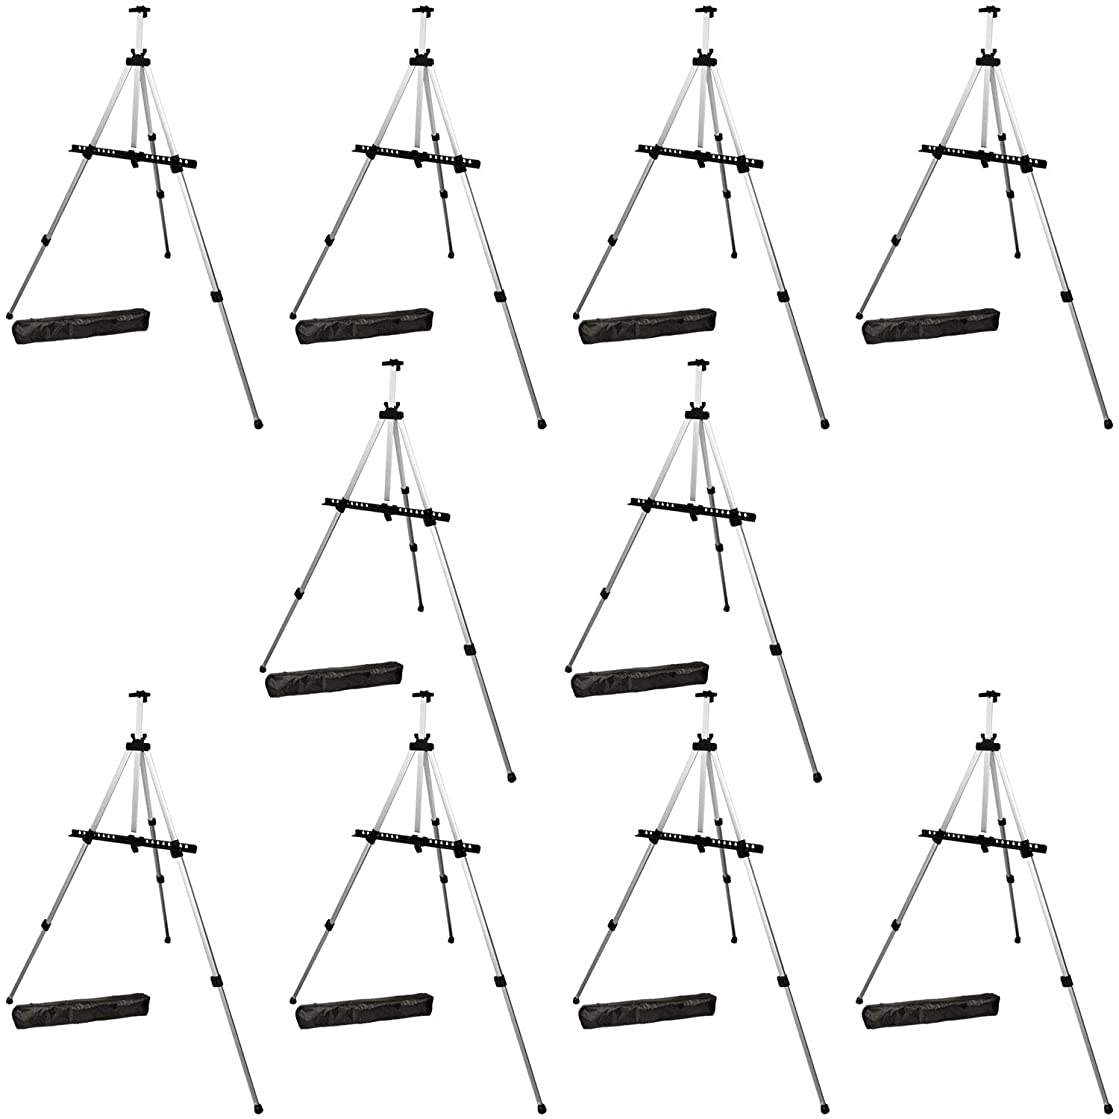 US Art Supply Silver 65inch Tall Lightweight Aluminum Field Floor Table Easel with Bag (10-Easels)